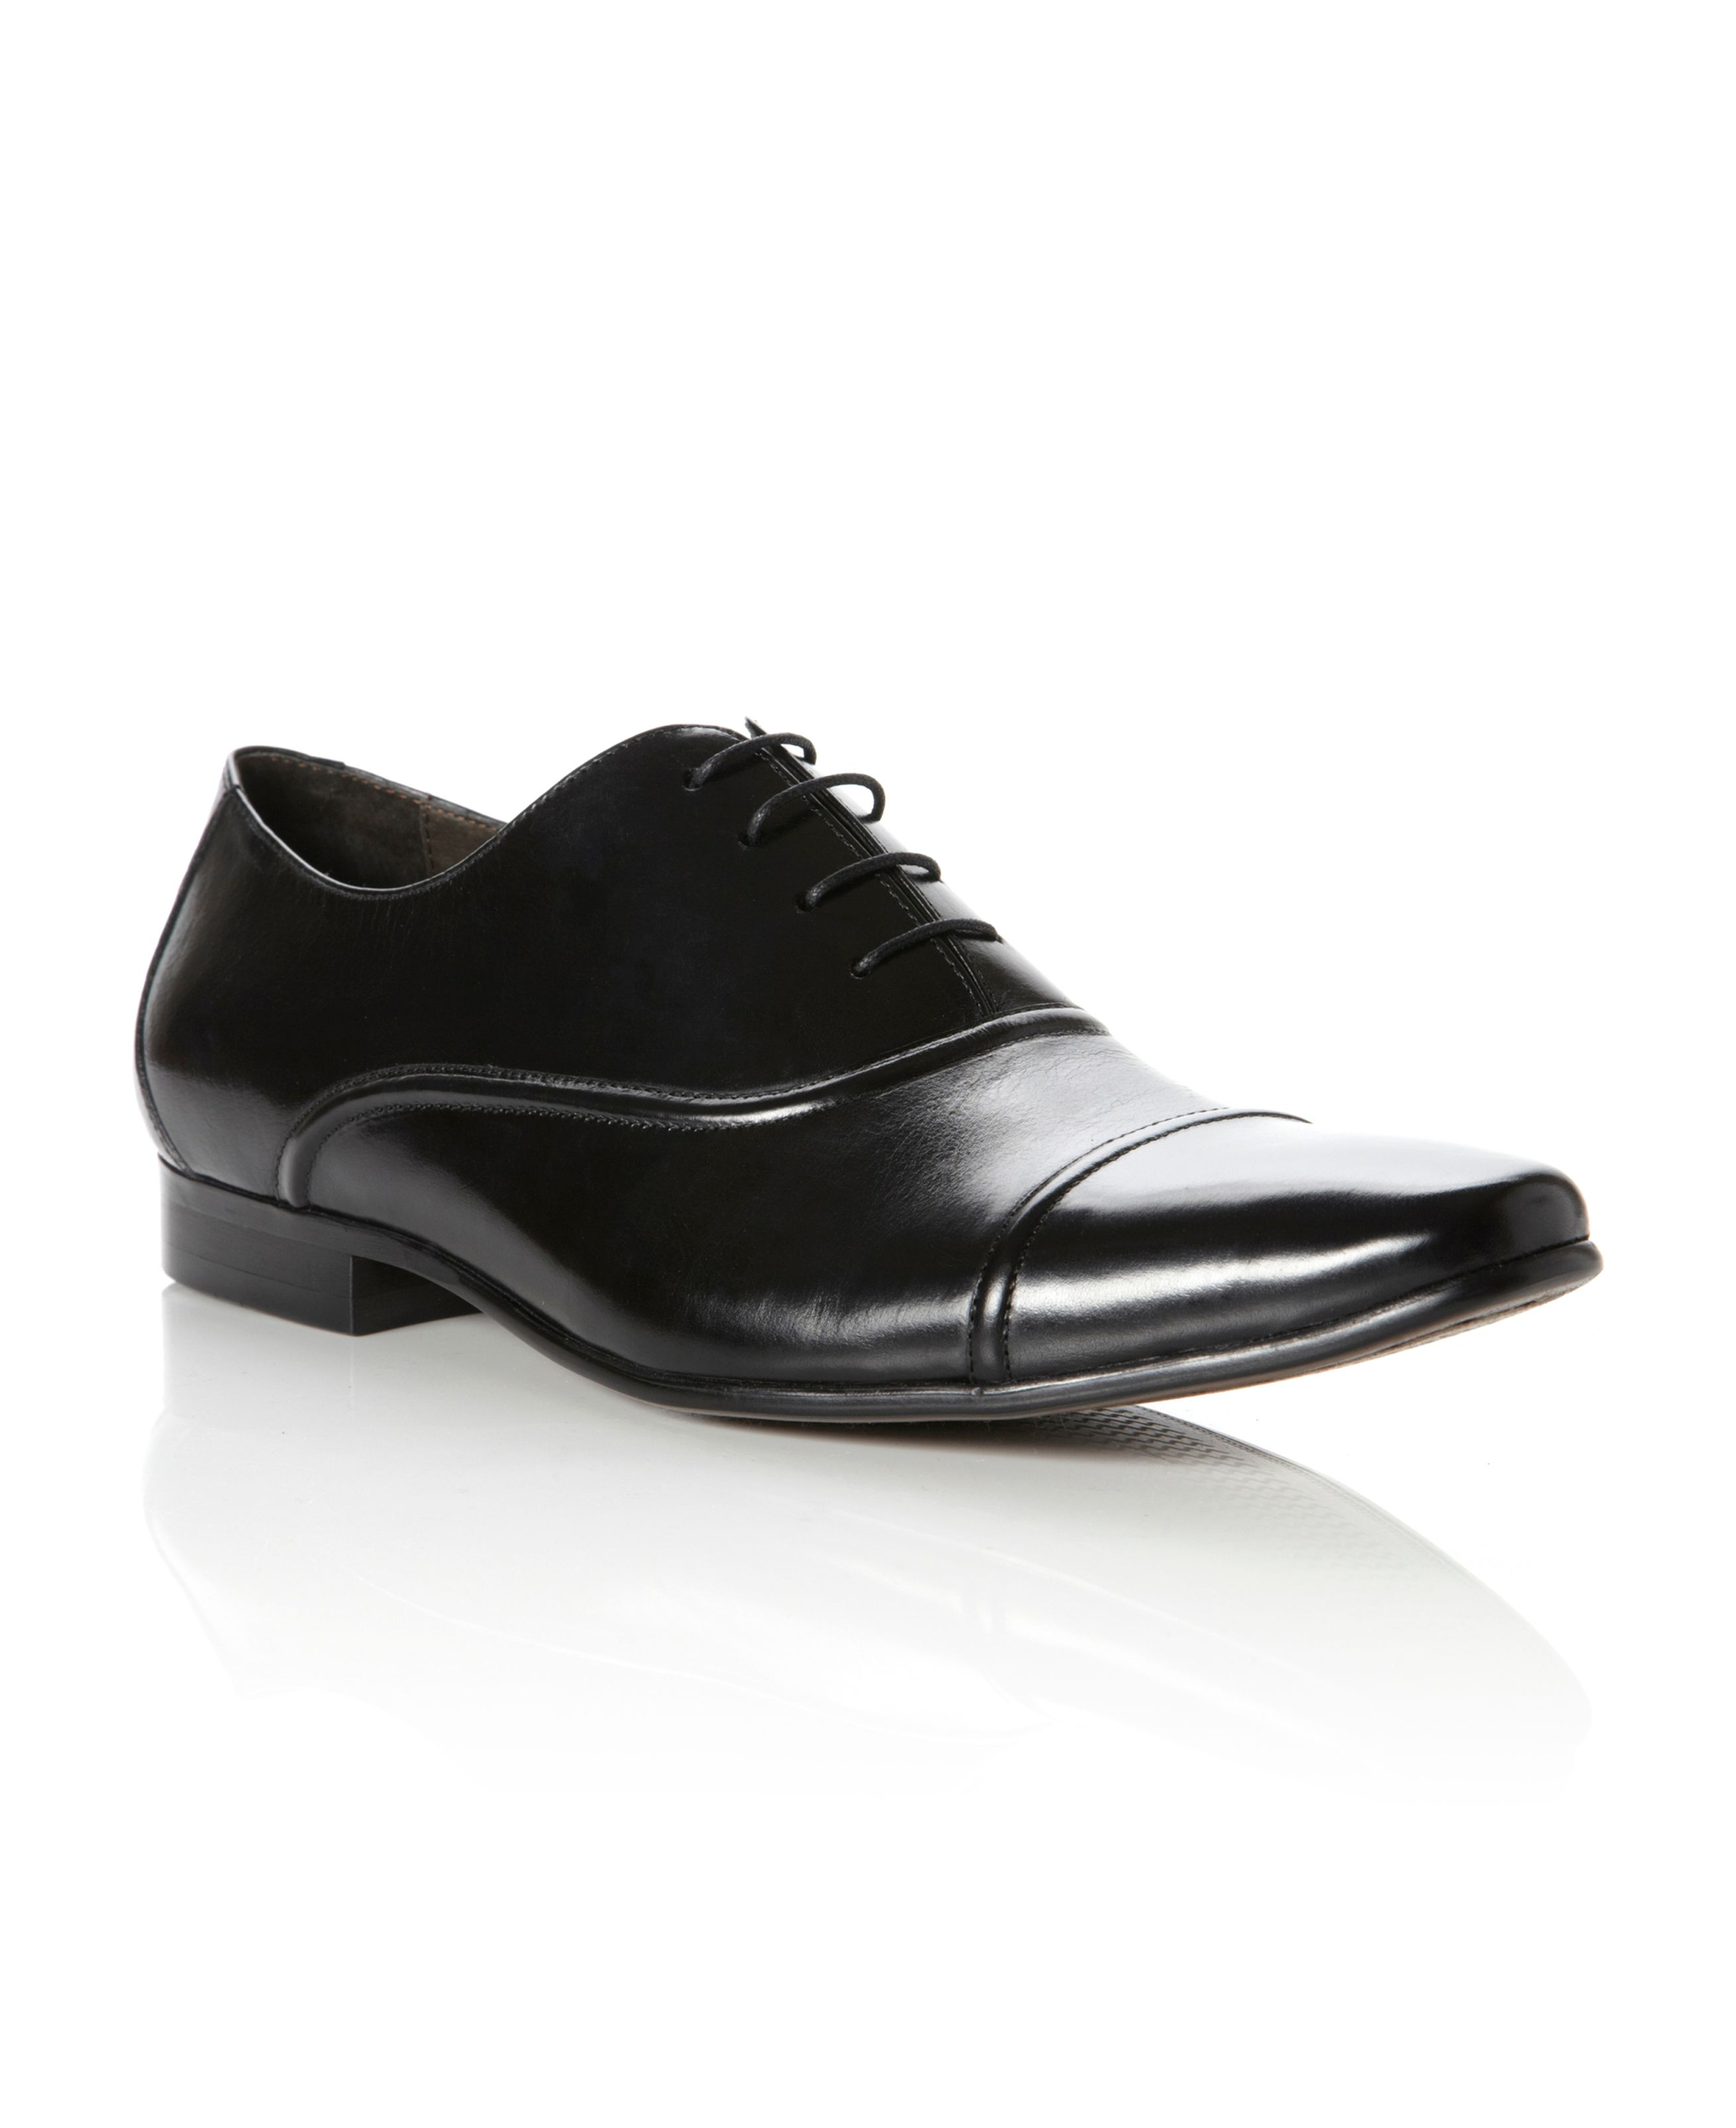 Academy toe cap seam detail oxford shoes